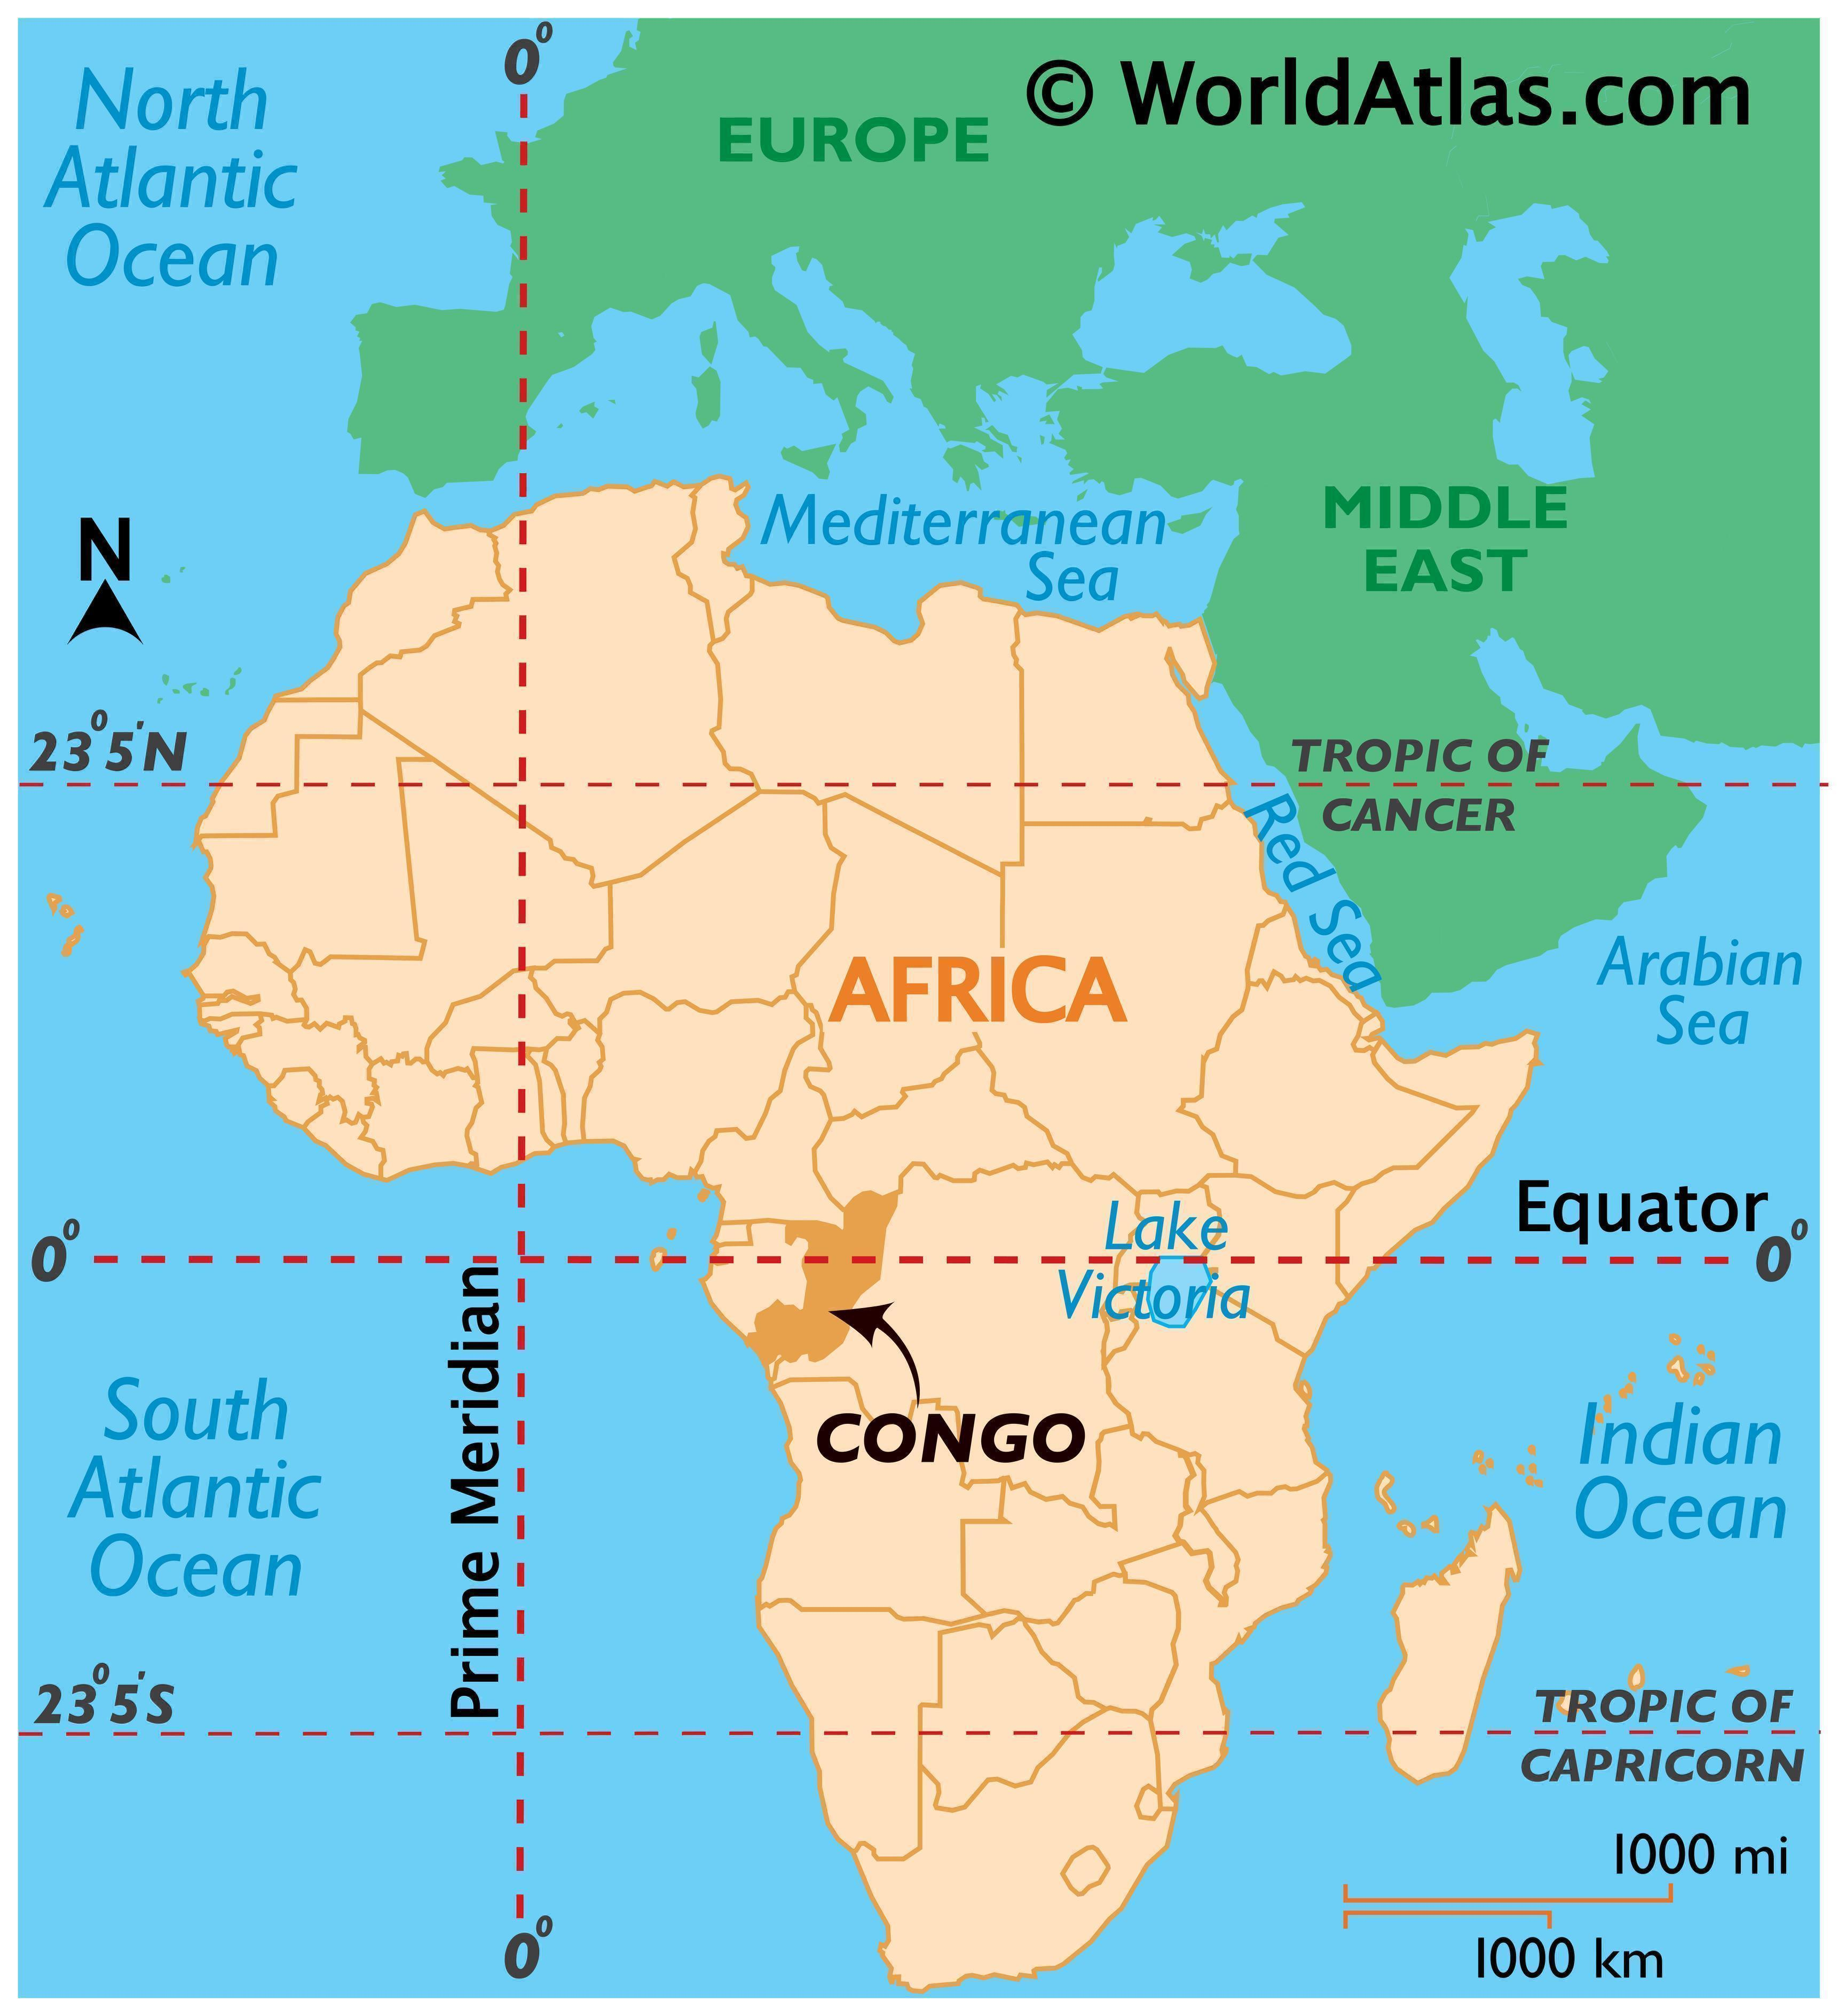 Map showing location of Congo in the world.